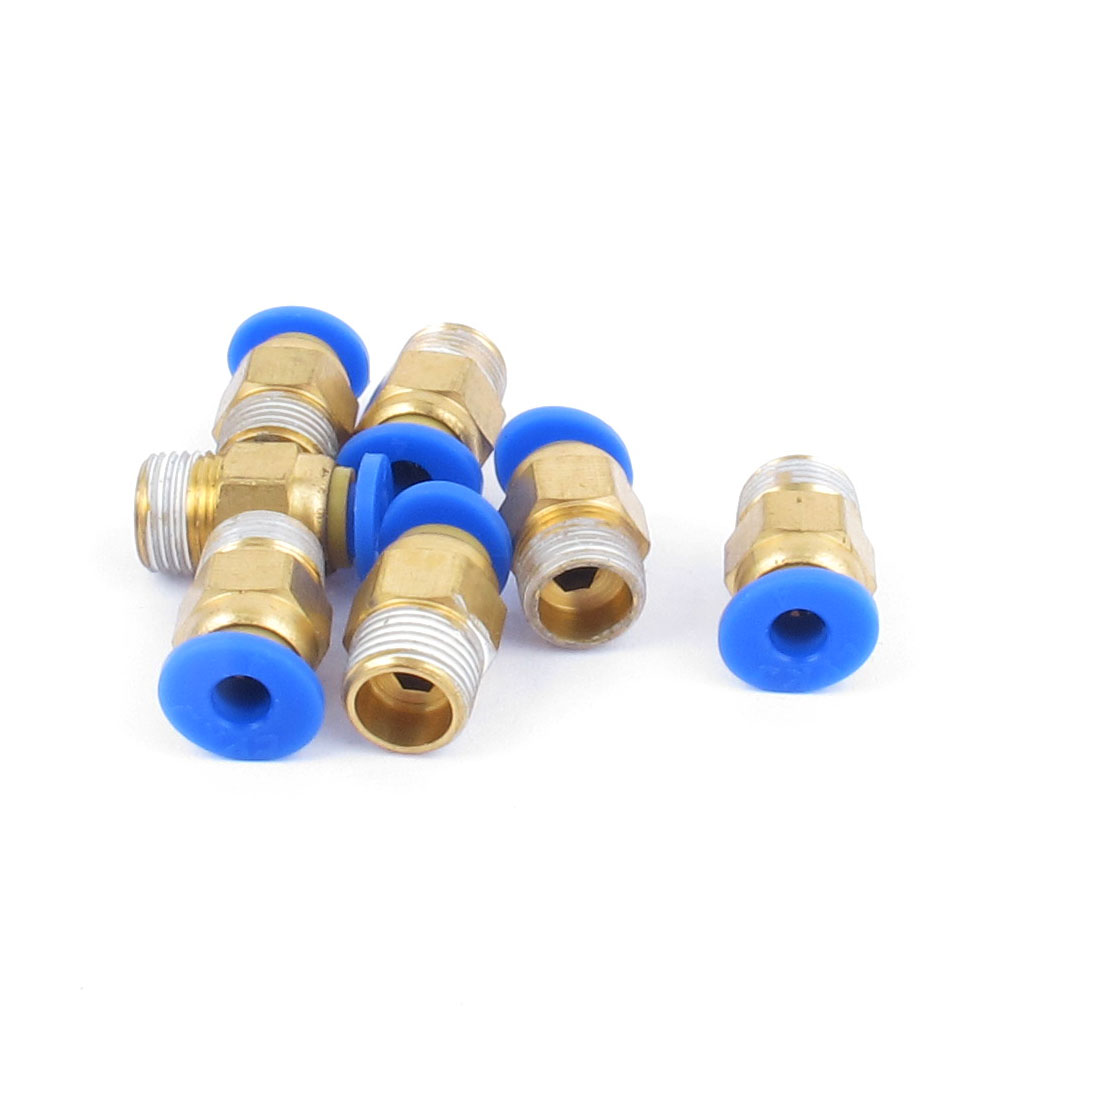 7pcs 9.5mm Male Thread 4mm Push in Joint Straight Pneumatic Quick Coupler Fitting Connector